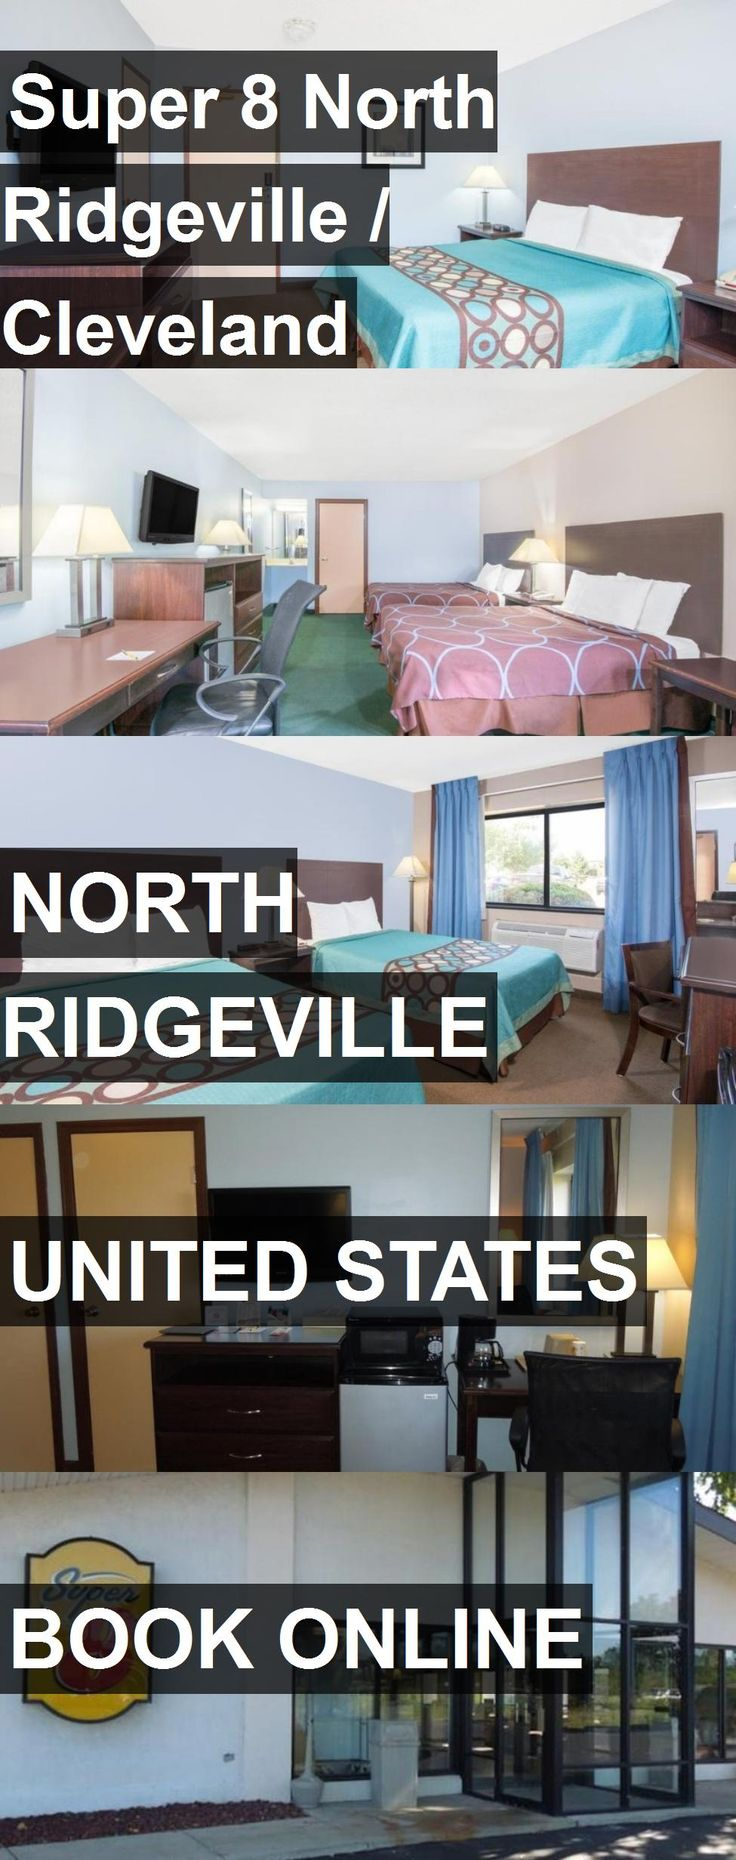 Hotel Super 8 North Ridgeville / Cleveland in North Ridgeville, United States. For more information, photos, reviews and best prices please follow the link. #UnitedStates #NorthRidgeville #Super8NorthRidgeville/Cleveland #hotel #travel #vacation